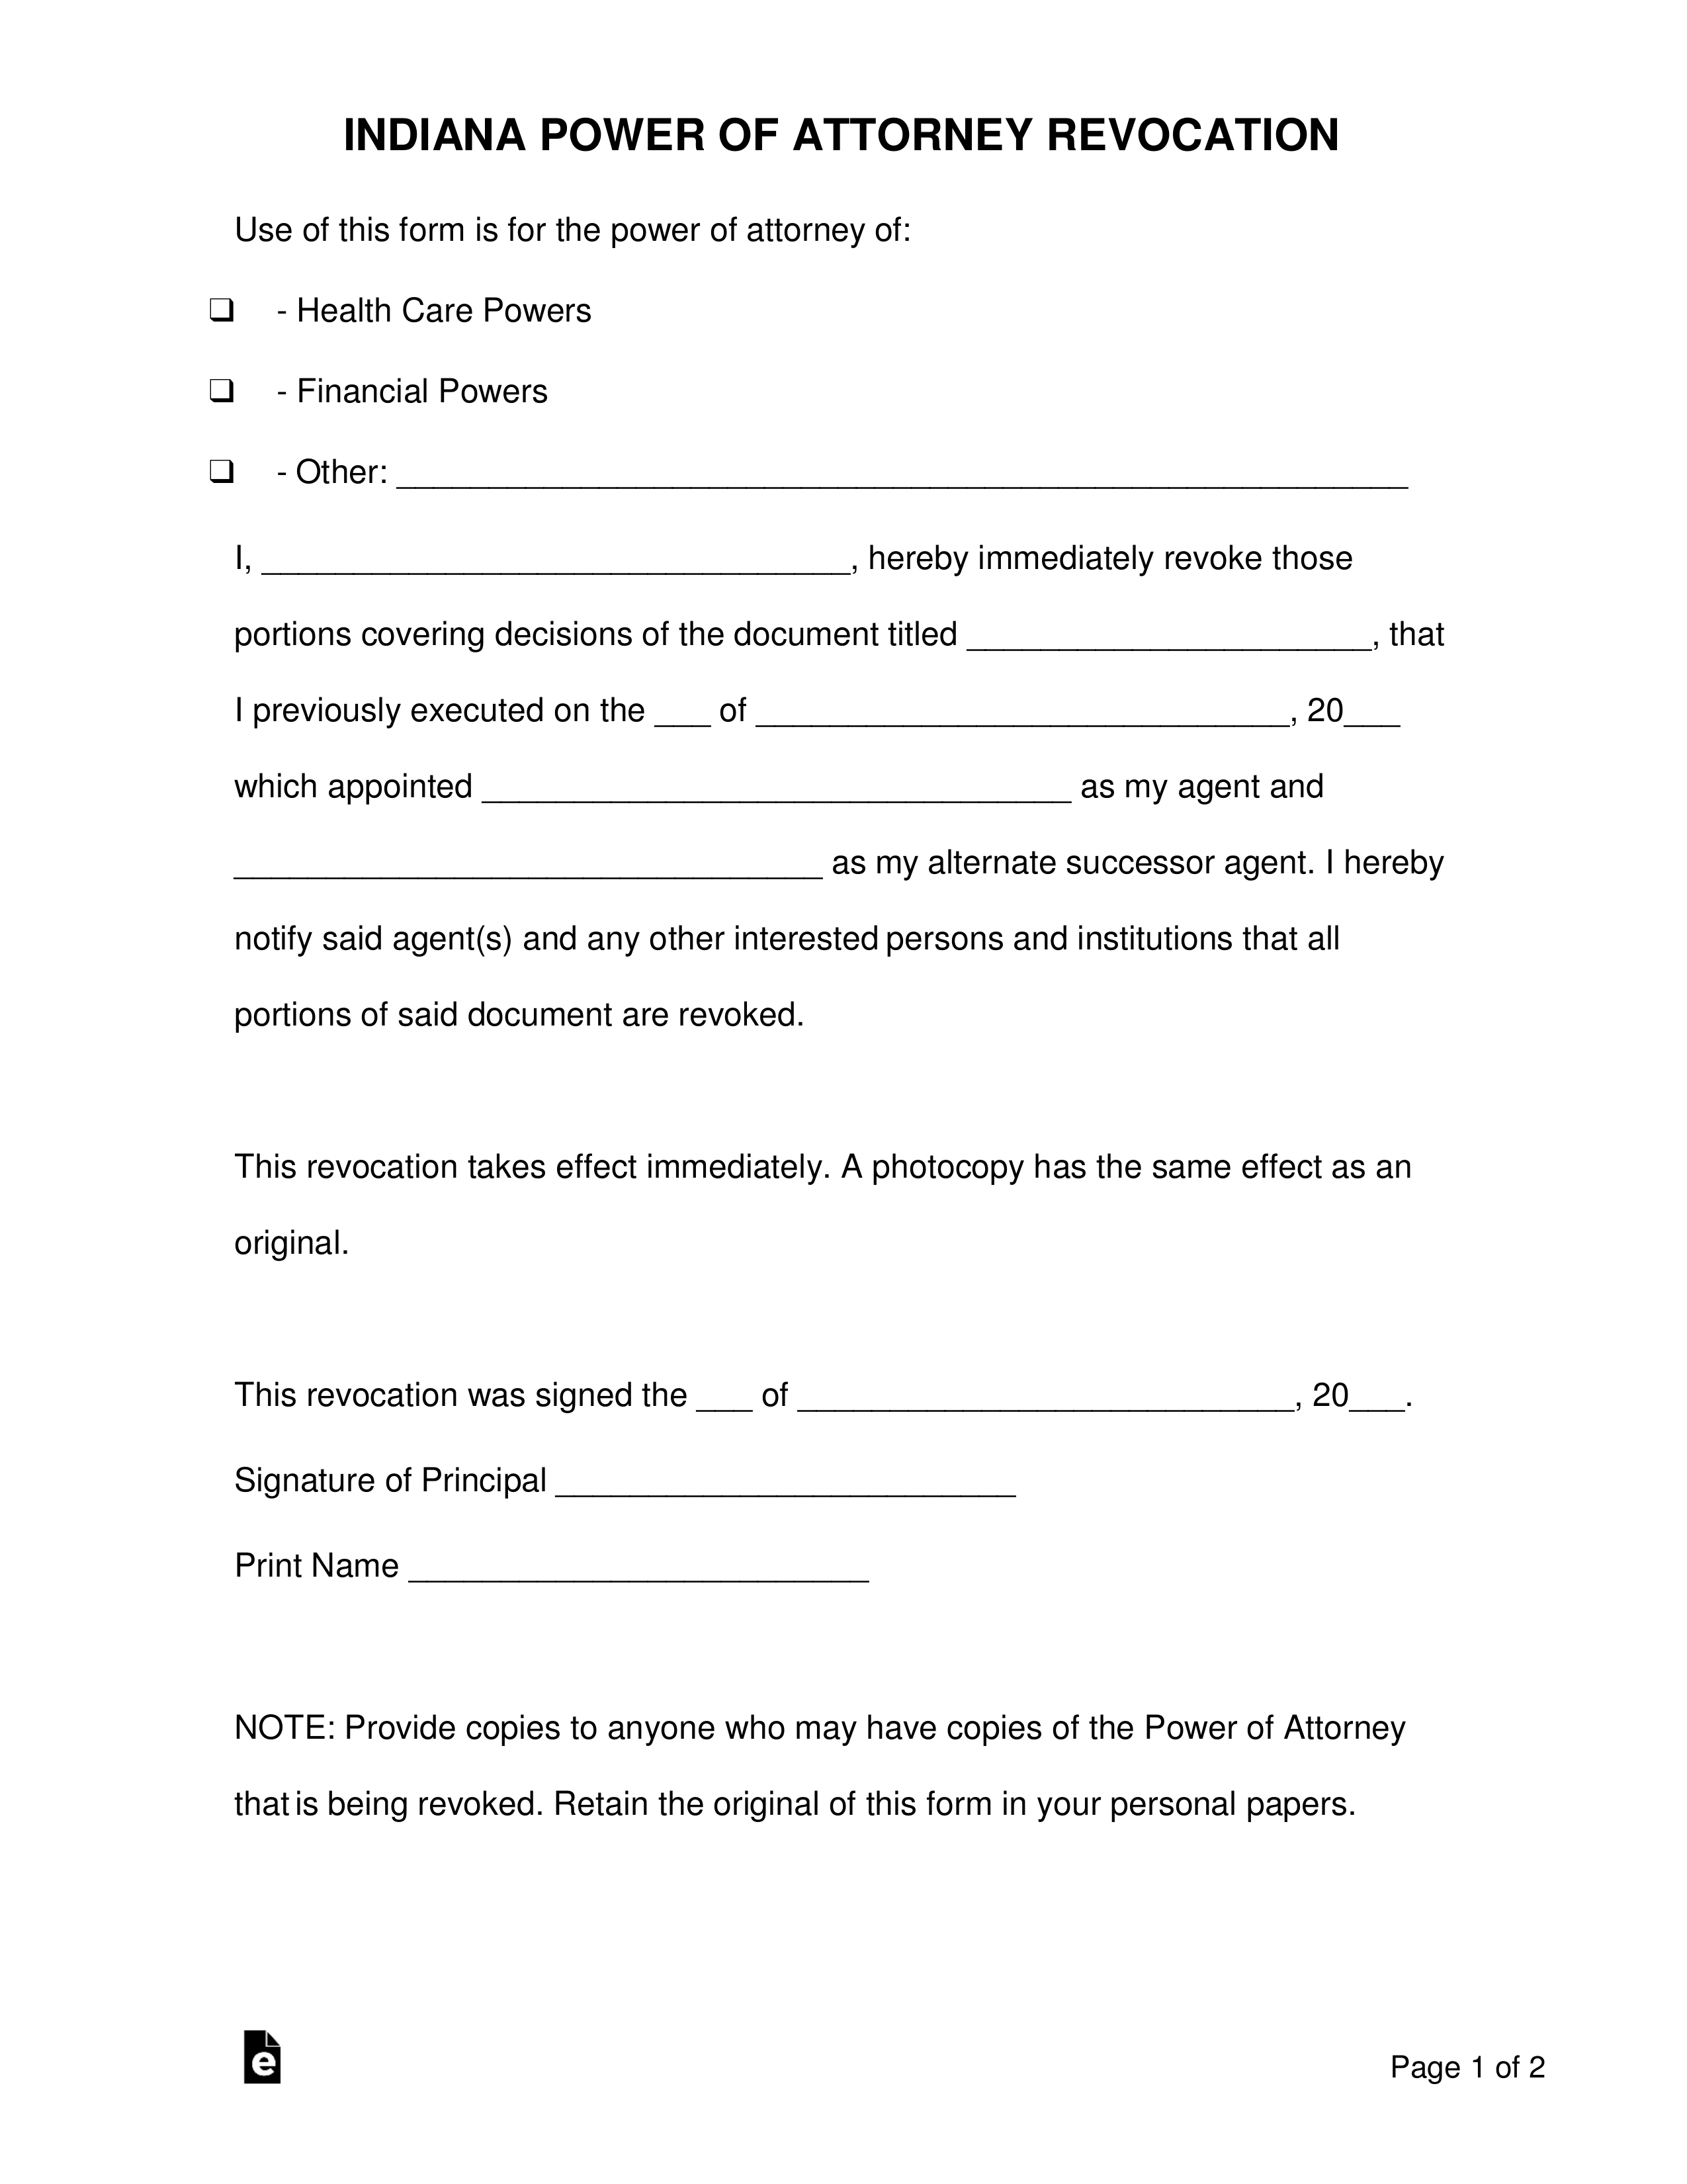 power of attorney form indiana  Free Indiana Power of Attorney Revocation Form - PDF | Word ...